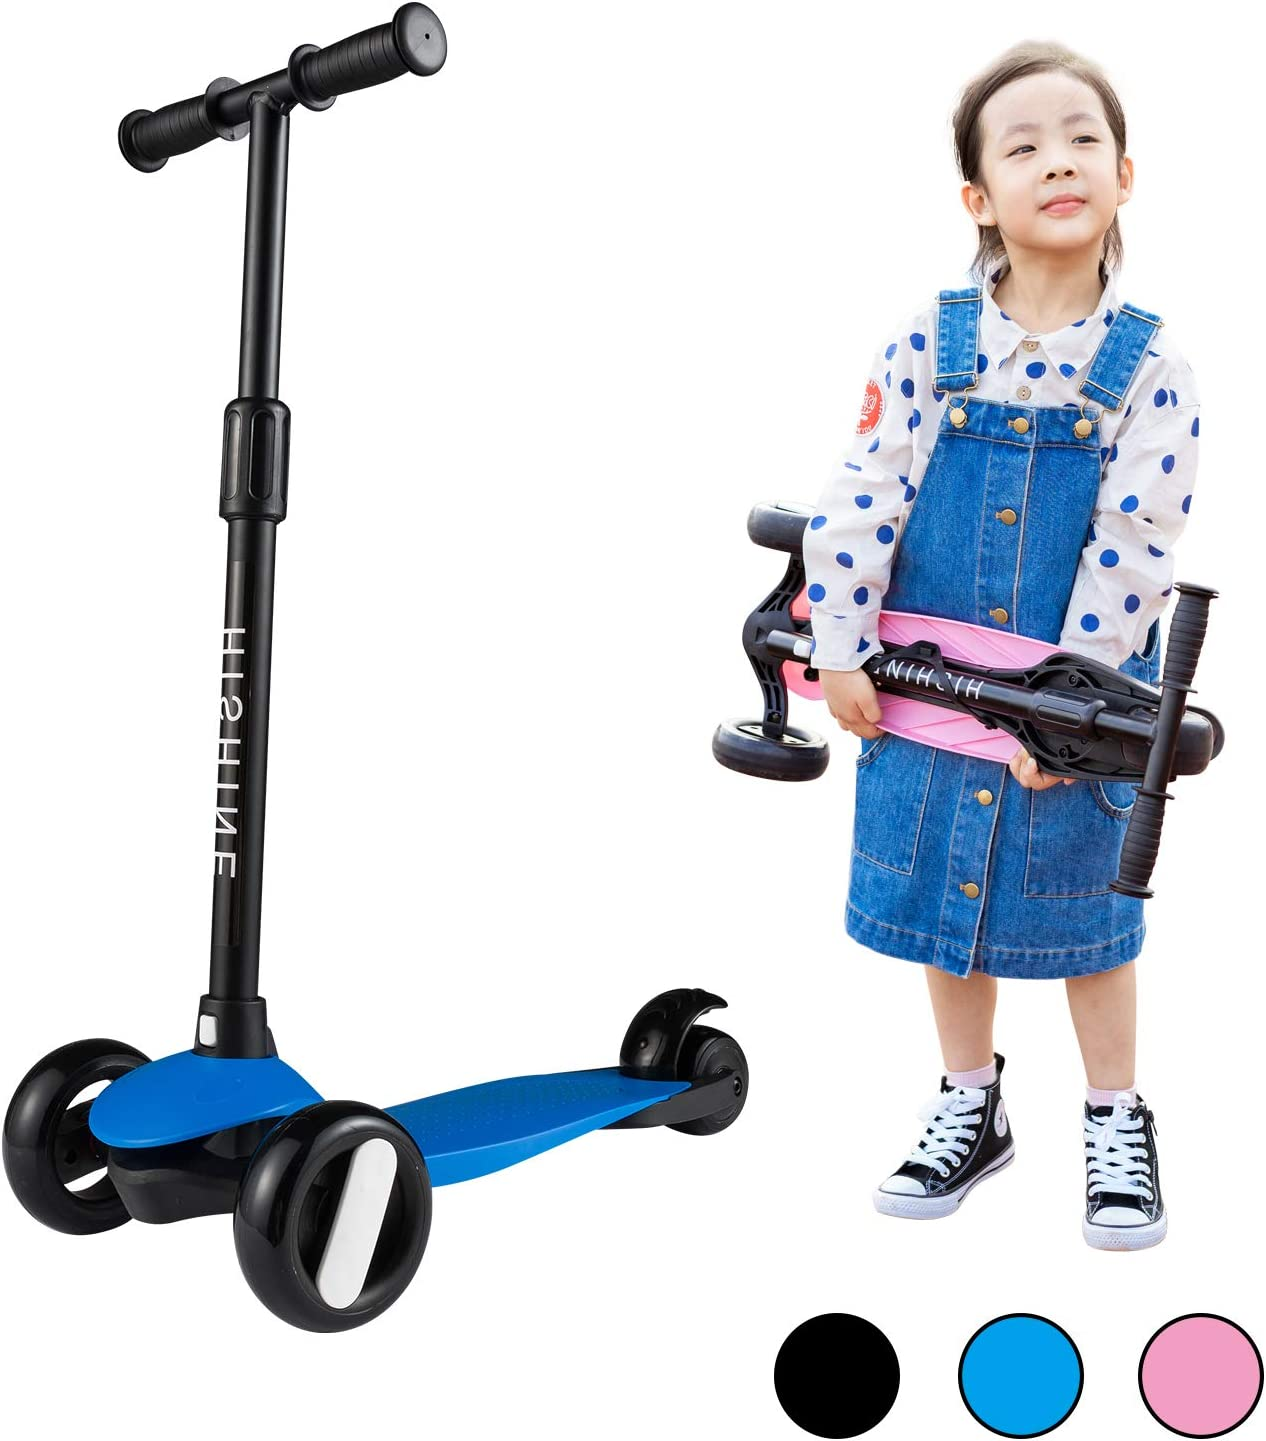 Adjustable Height Black Kick Scooter for Kids with 3 Big Light Up Wheels